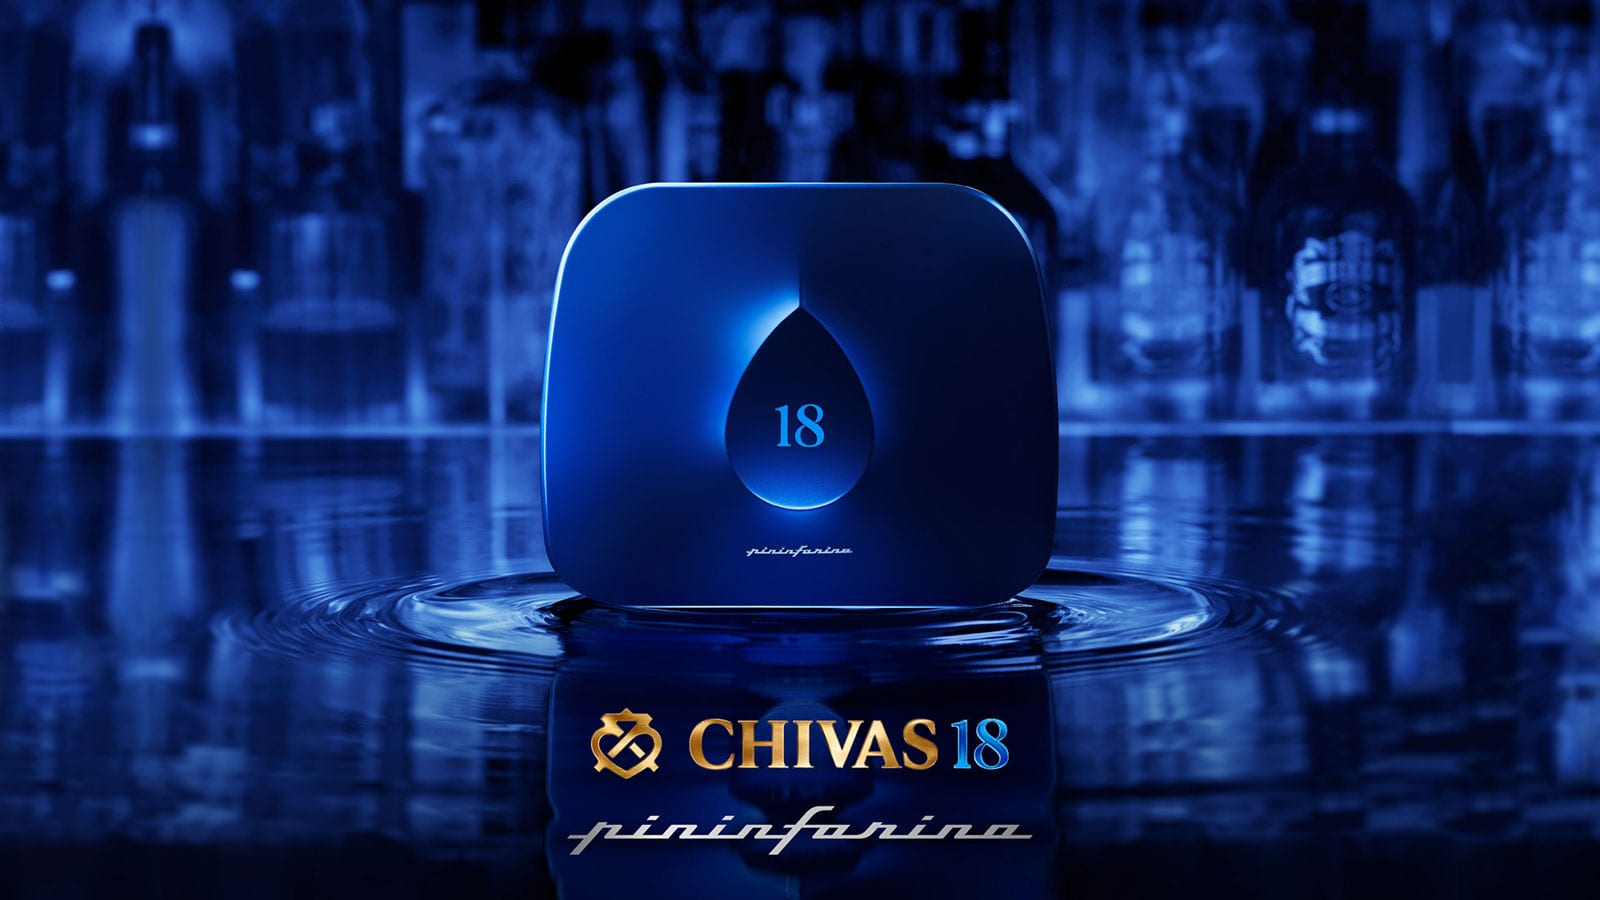 CHIVAS REGAL - CHIVAS 18 BY PININFARINA YEAR 1